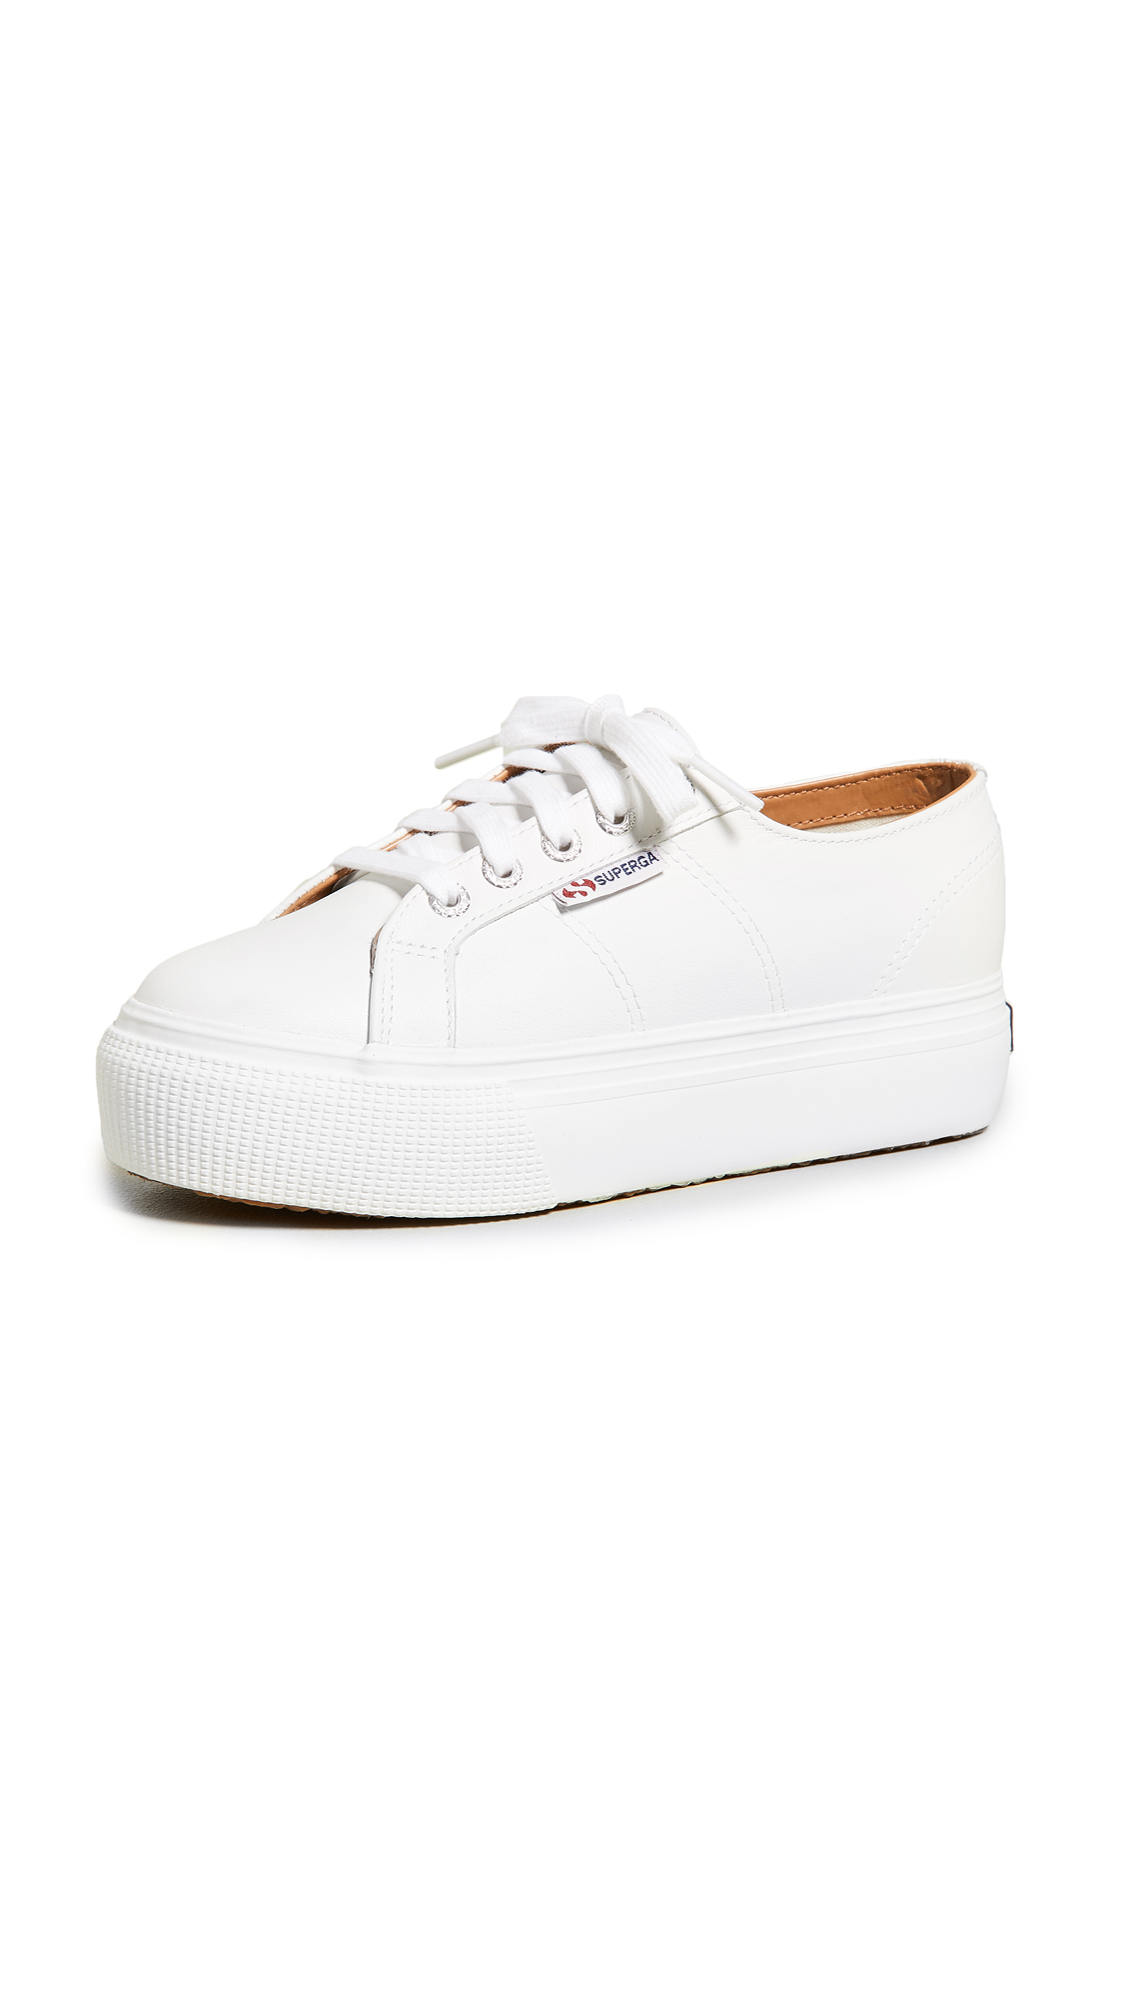 Superga 2790 Platform Sneakers - White